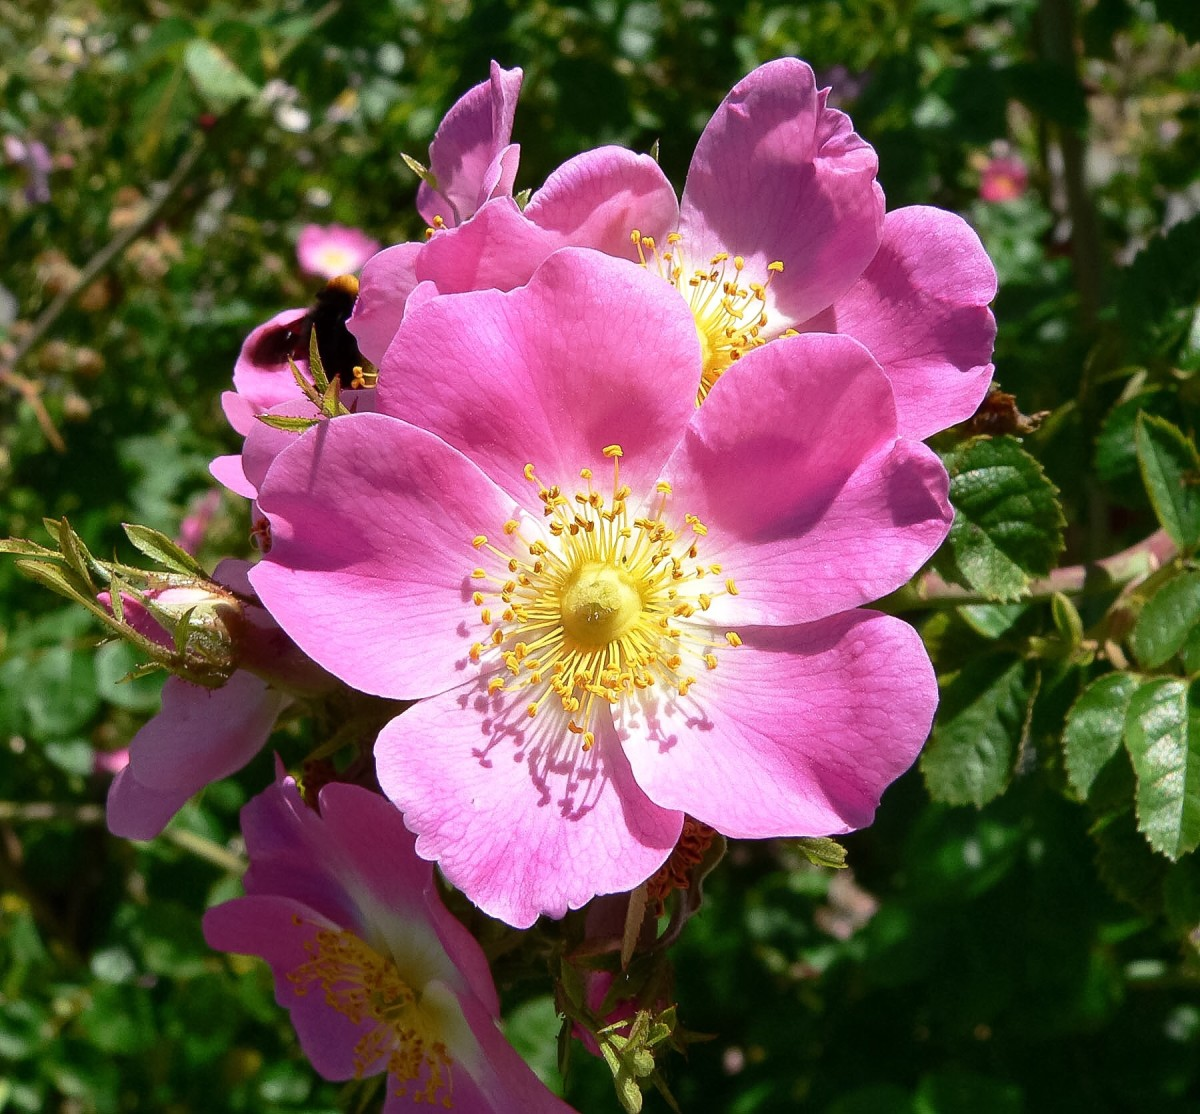 Rosa rubiginosa is a single rose.